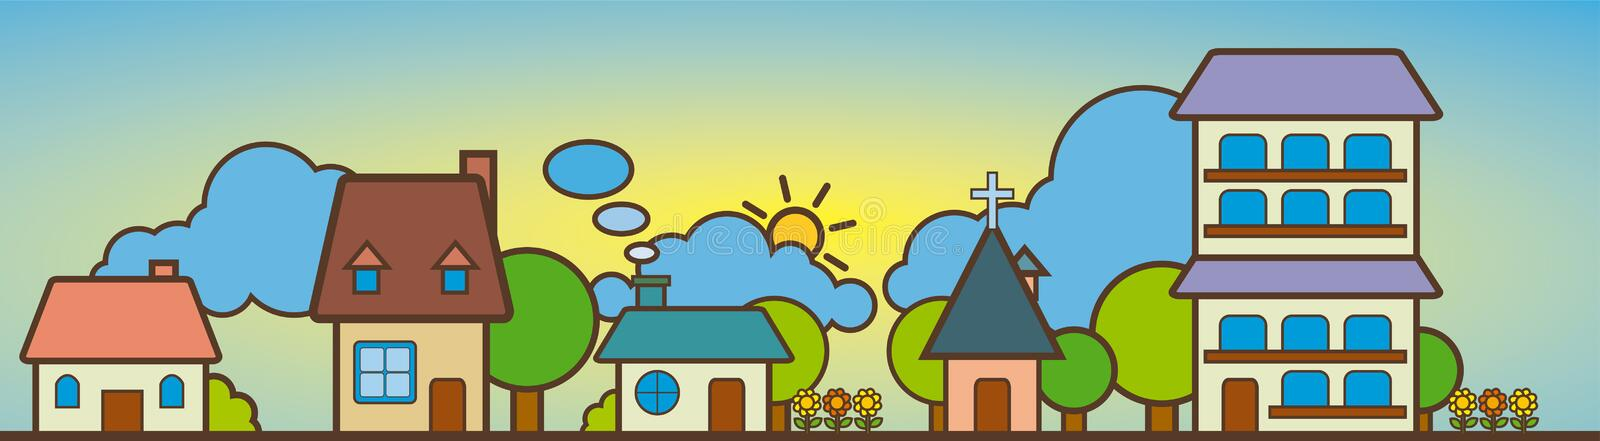 Cute House Landscape stock illustration